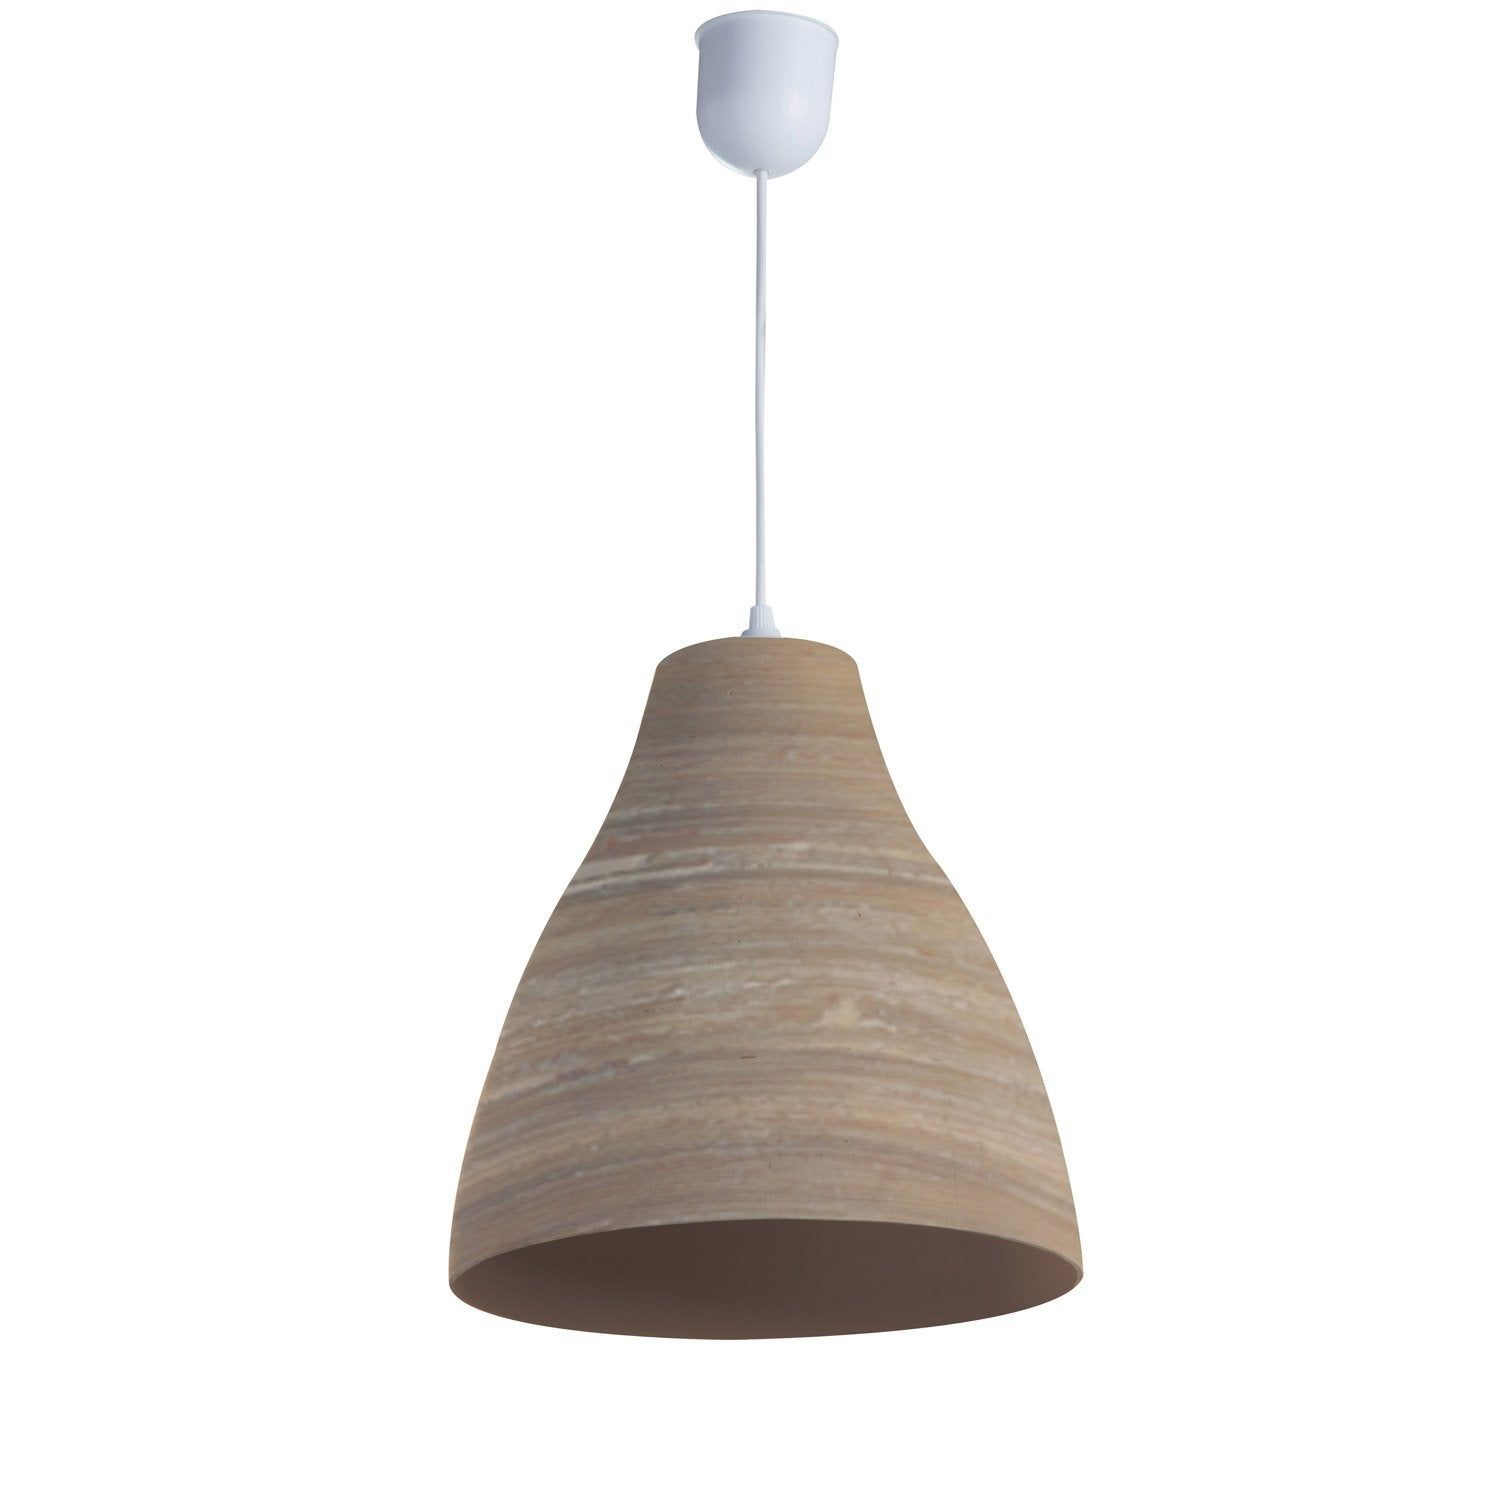 Suspension, e27 bord de mer Calcuta bambou naturel 1 x 60